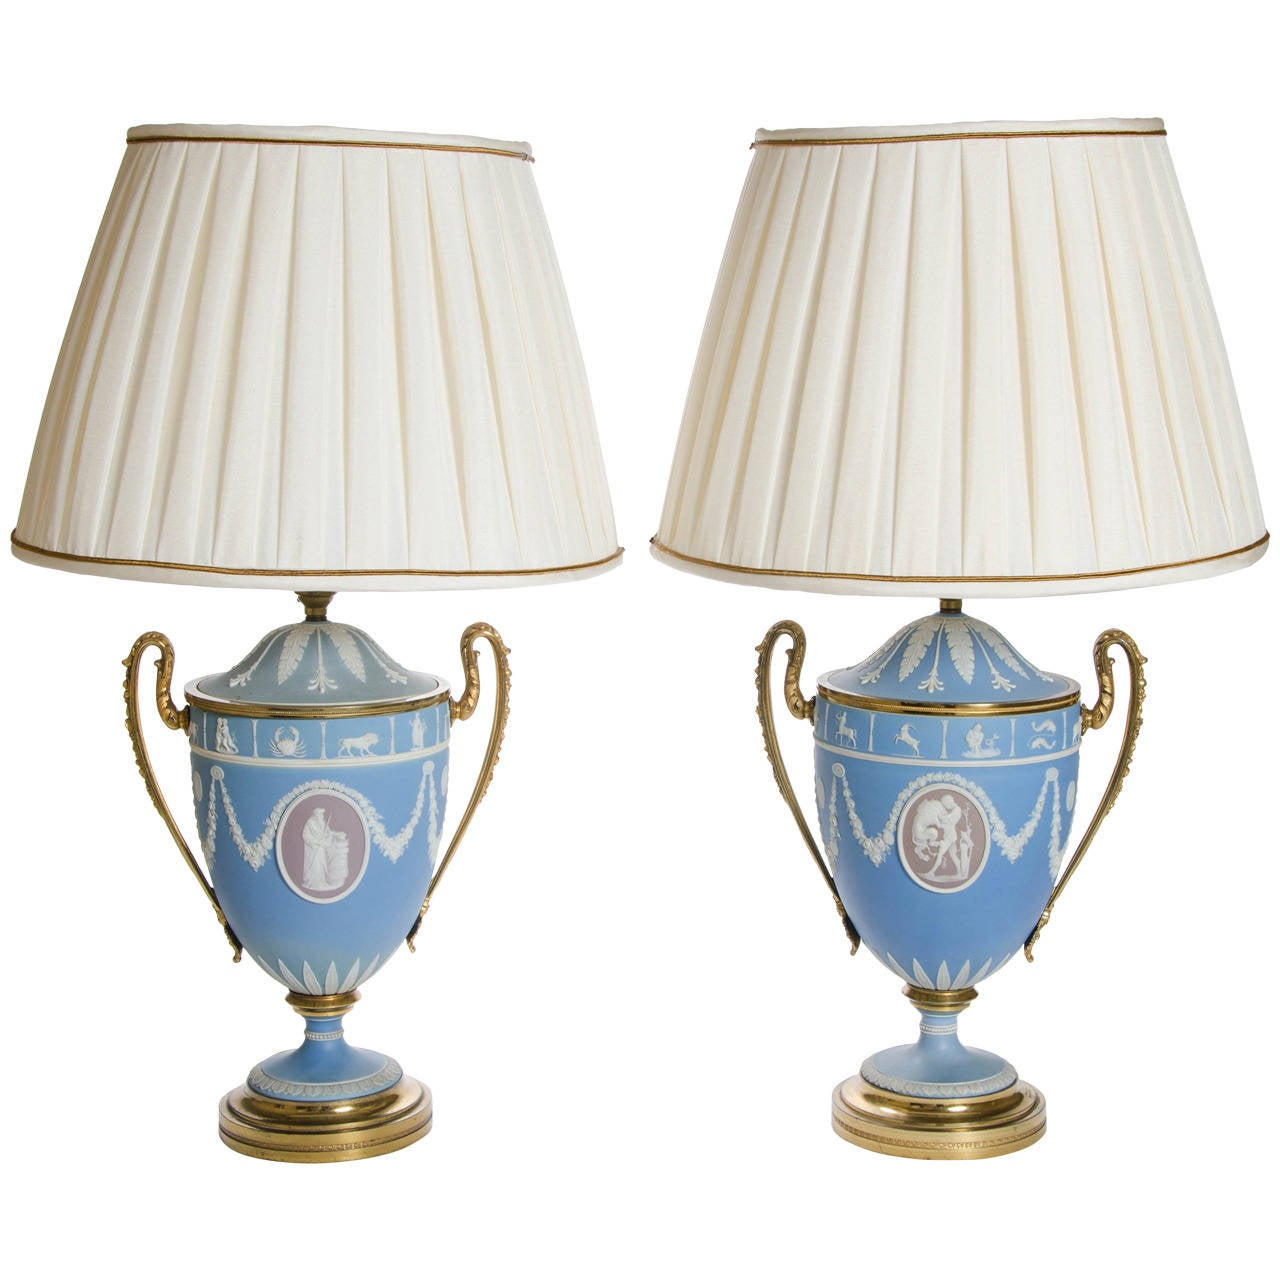 A Pair of Wedgwood Vases as Lamps with ormolu handles and bases 1